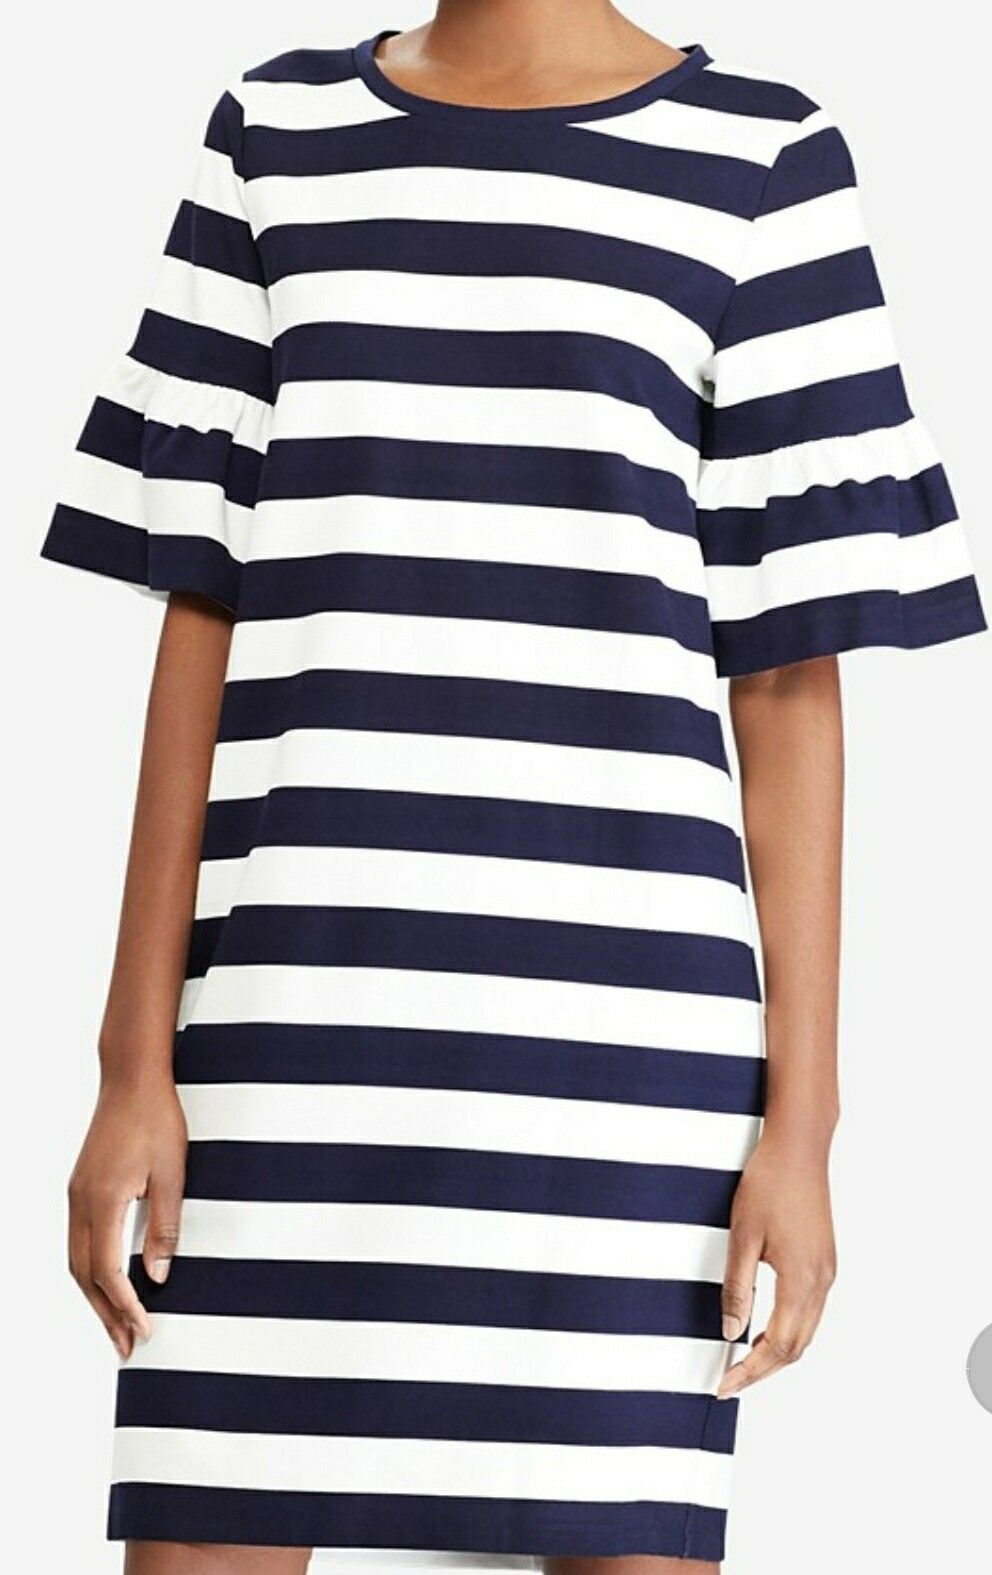 Ralph Lauren Striped Ponte-Knit Dress, Größe L